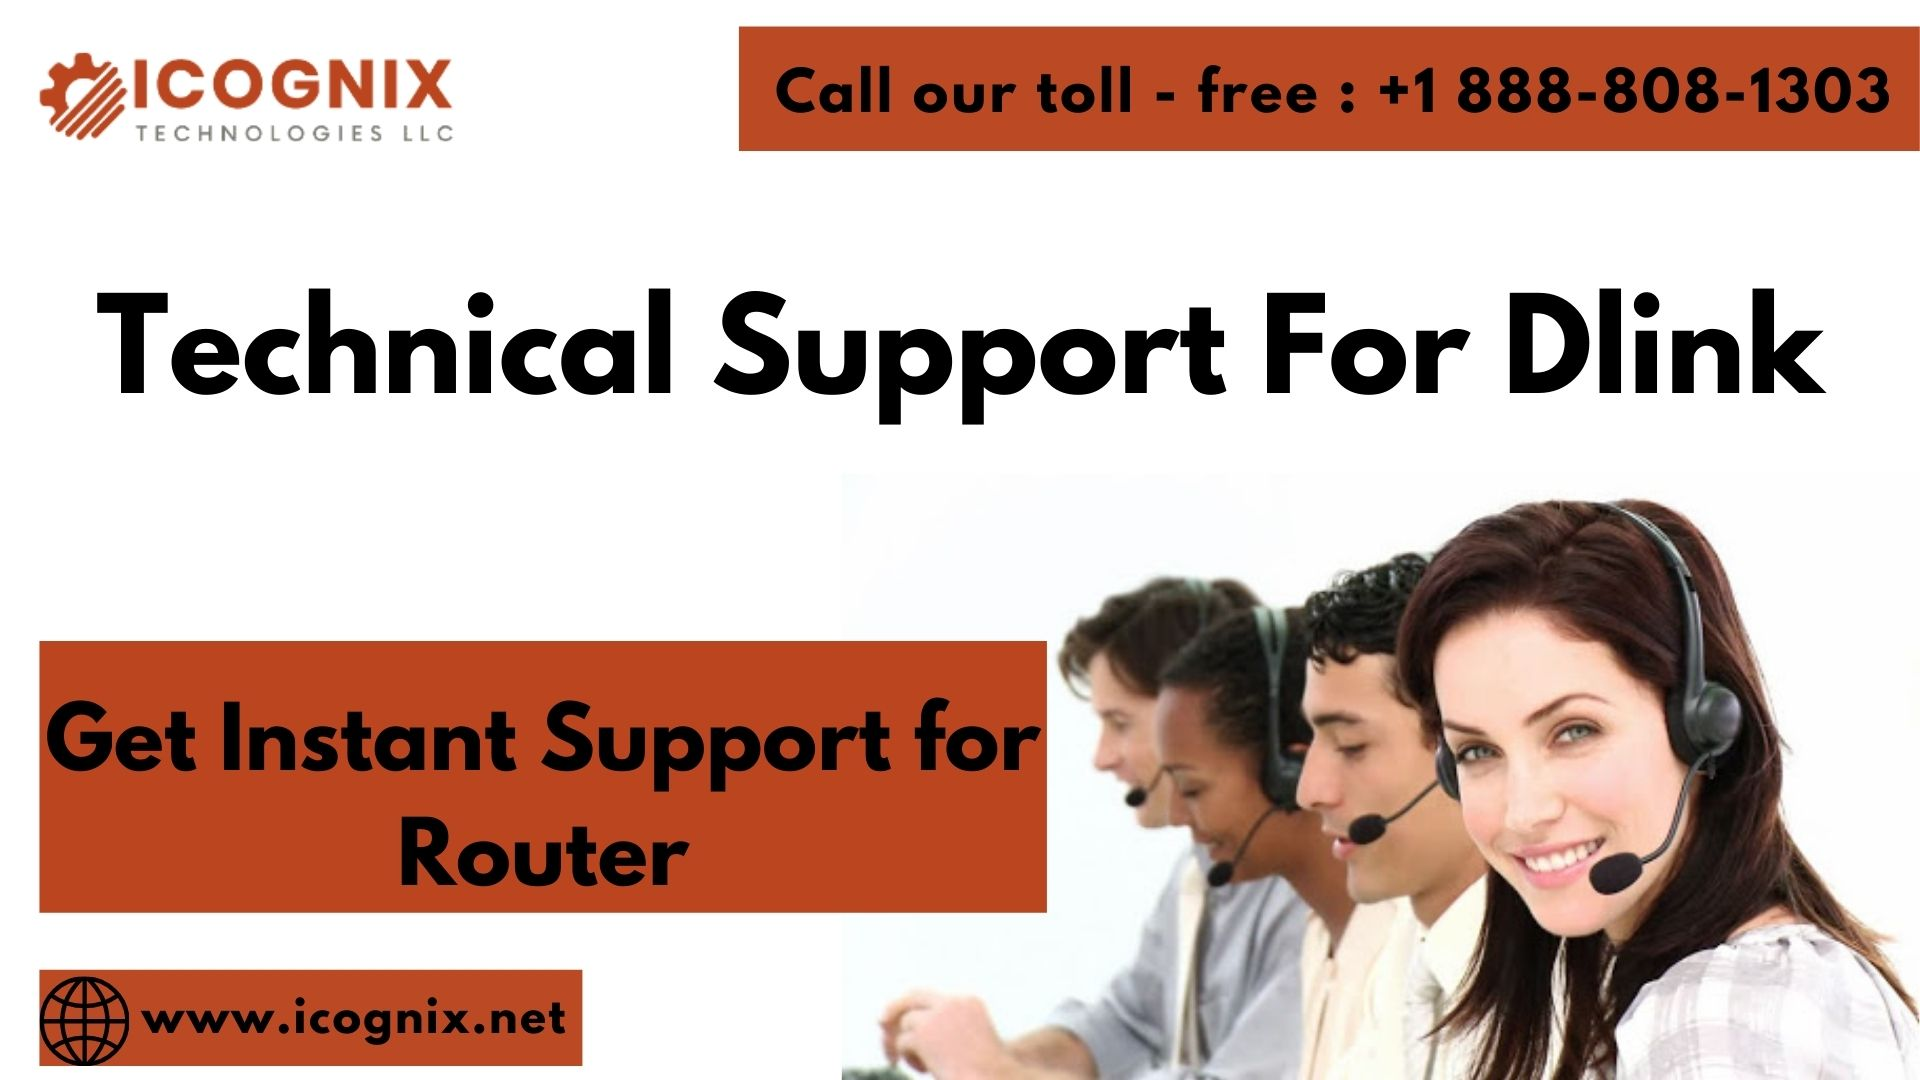 Technical Support For Dlink